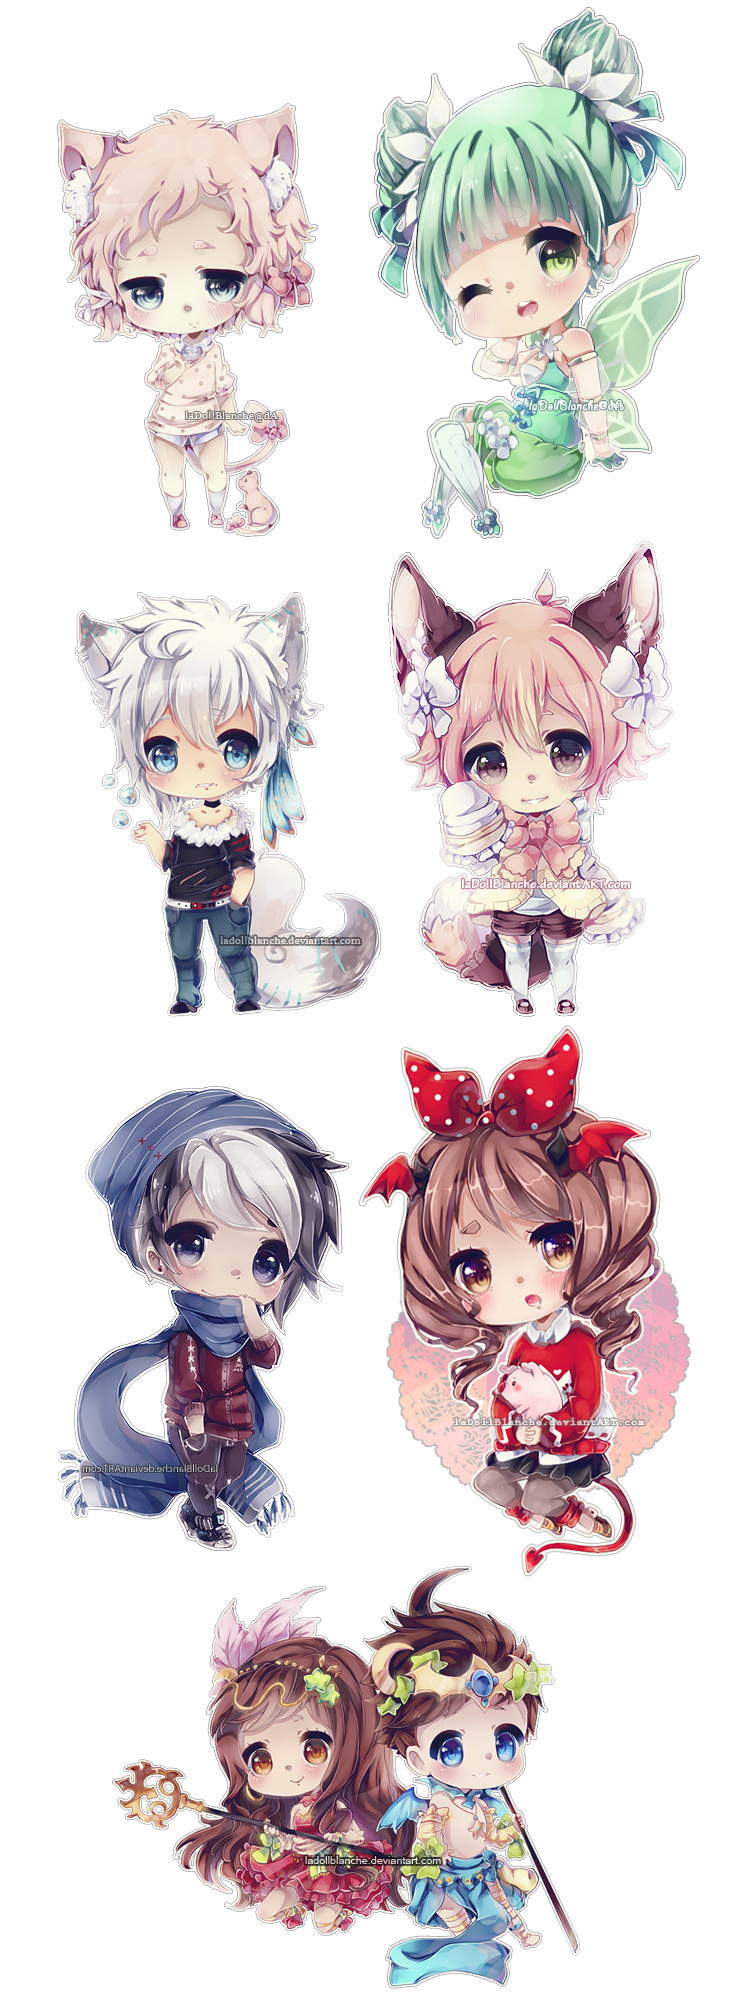 Chibi by LaDollBlanche | New | Pinterest | Manga, Dibujo y Kawaii